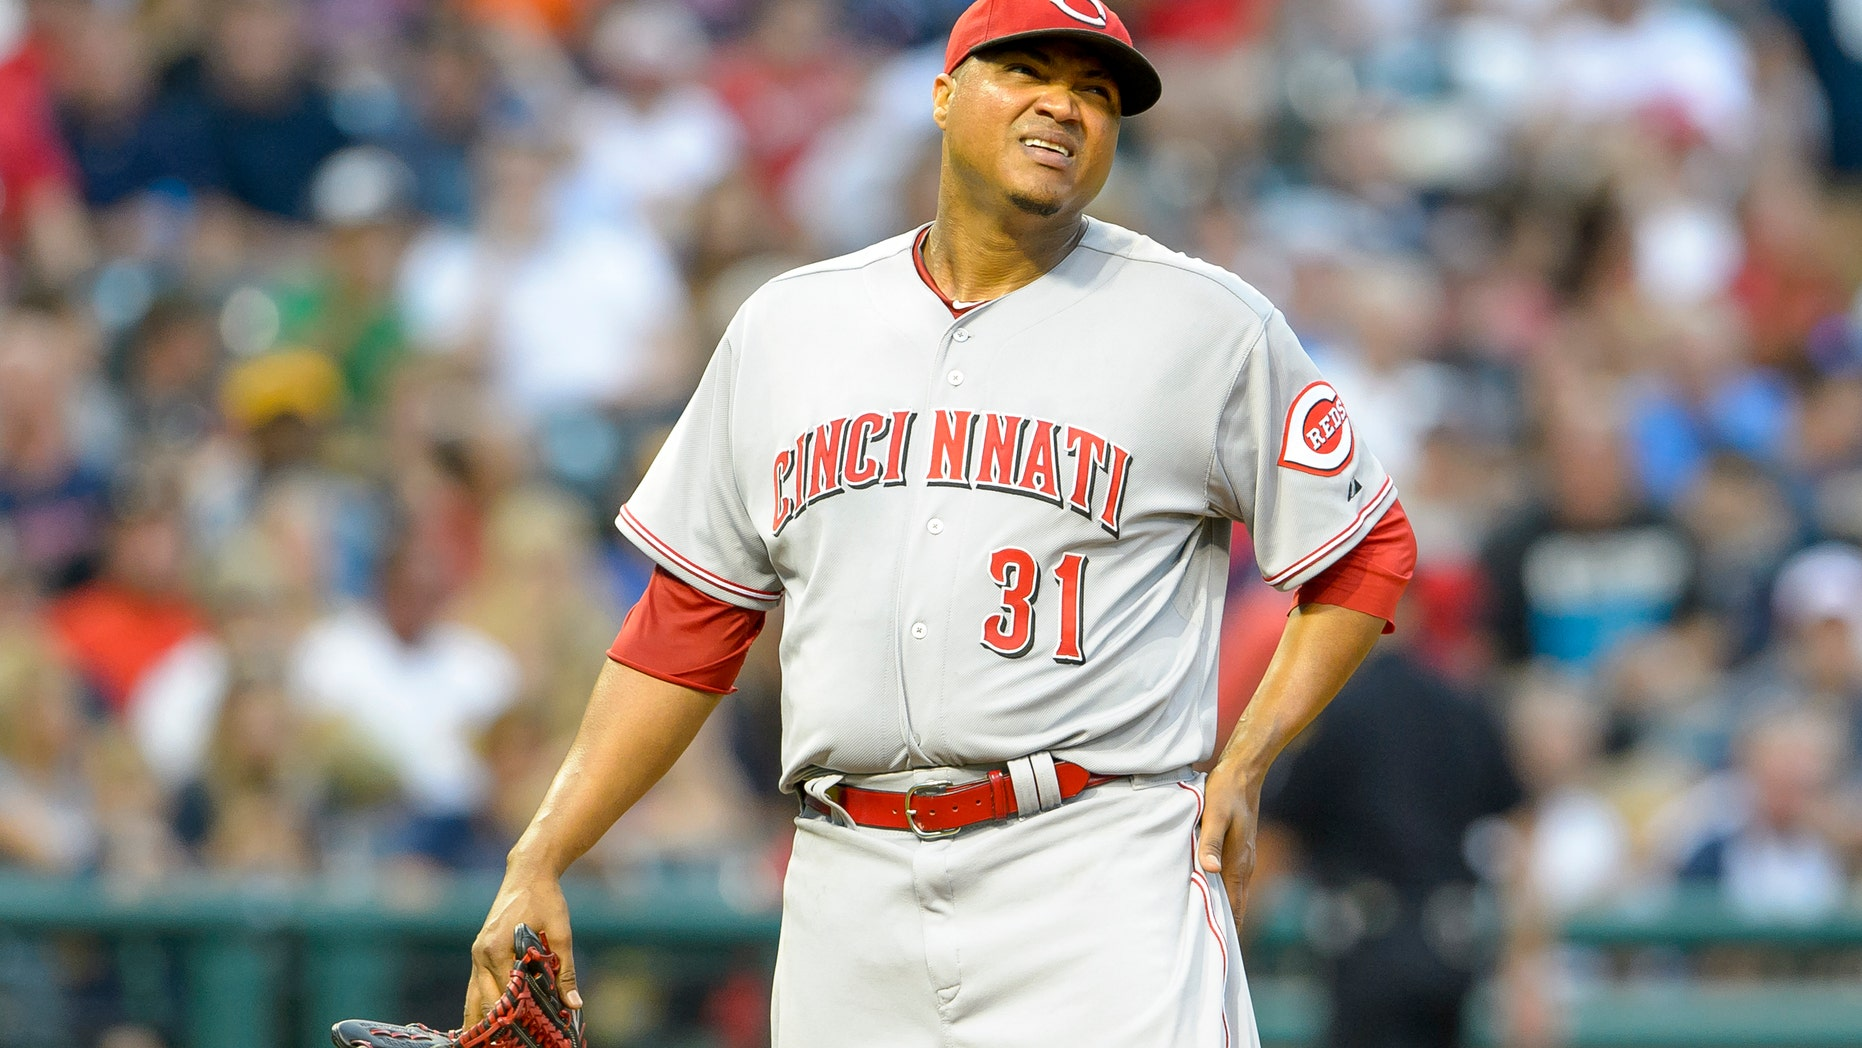 CANTON, OH - AUGUST 4: Starting pitcher Alfredo Simon #31 of the Cincinnati Reds reacts after giving up a three-run home run during the fourth inning against the Cleveland Indians at Progressive Field on August 4, 2014 in Cleveland, Ohio. (Photo by Jason Miller/Getty Images)